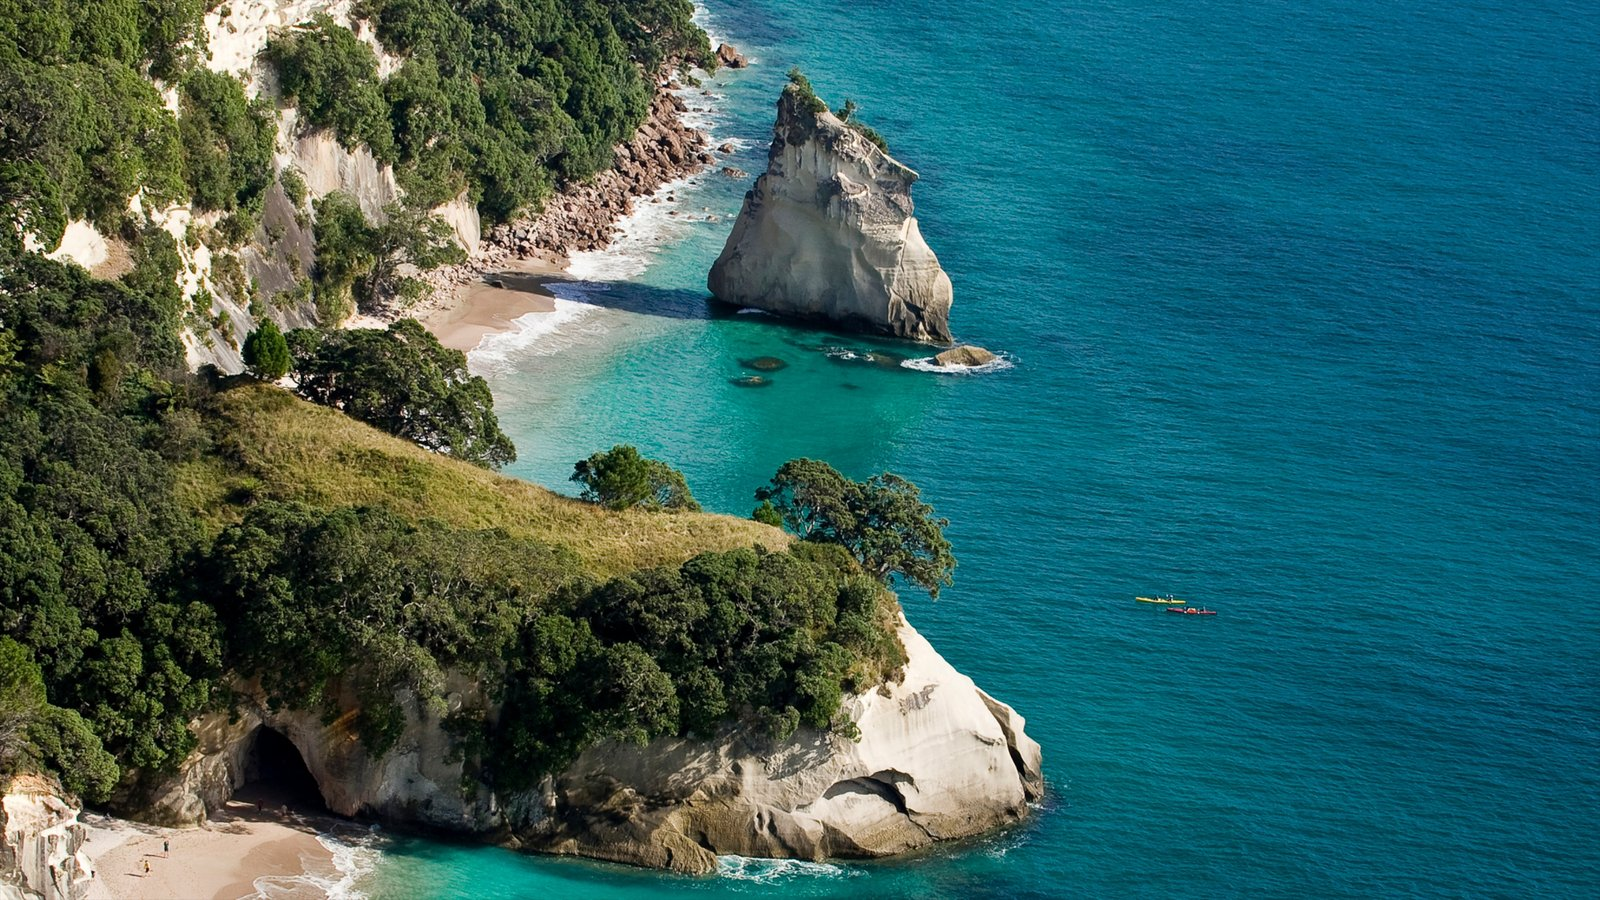 Cathedral Cove Beach which includes a beach, landscape views and rocky coastline